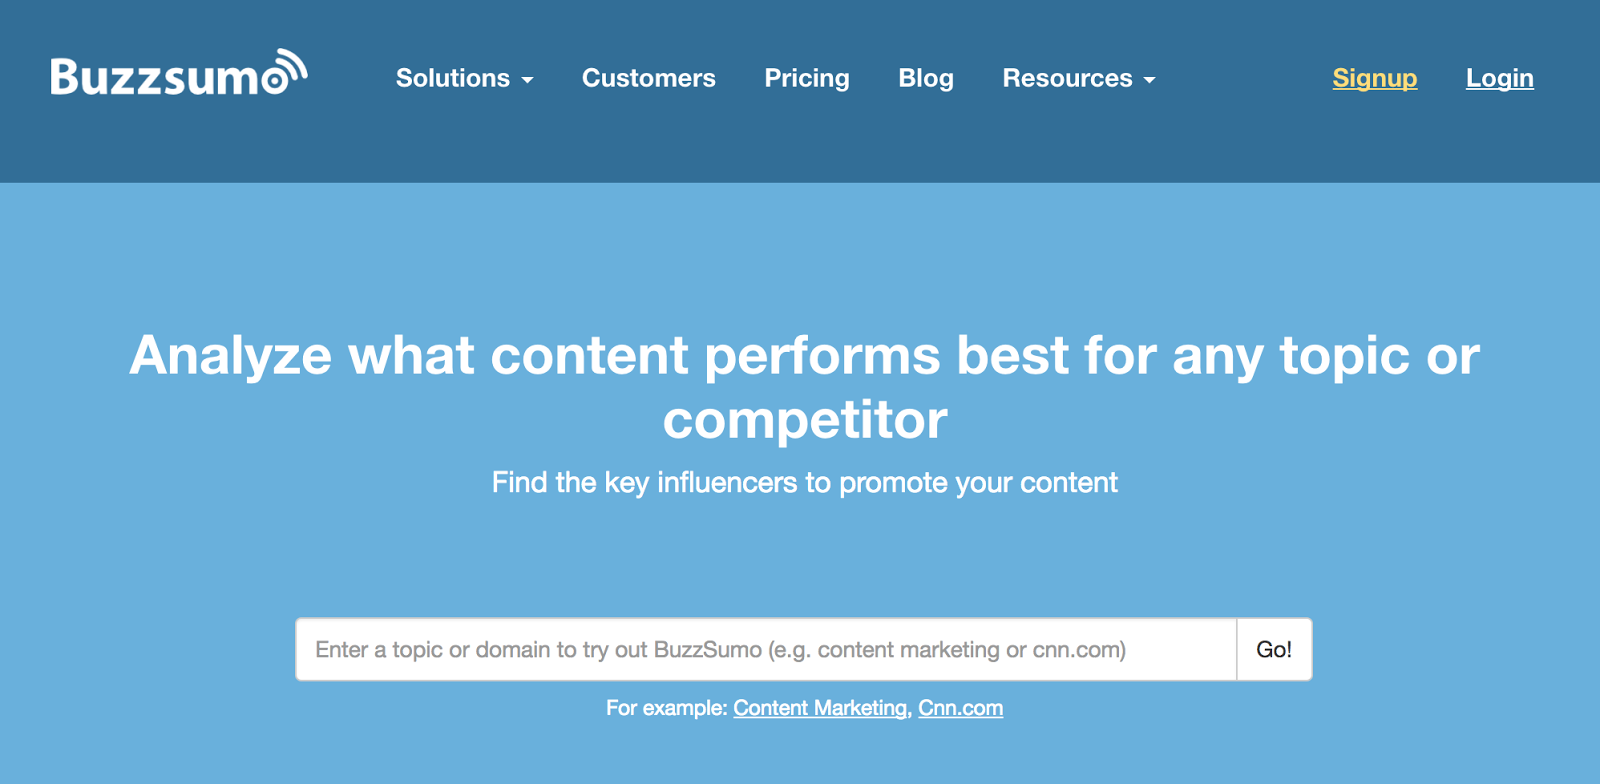 Buzzsumo makes planning and producing content easier by giving you an instant look into the top-performing content for any topic.